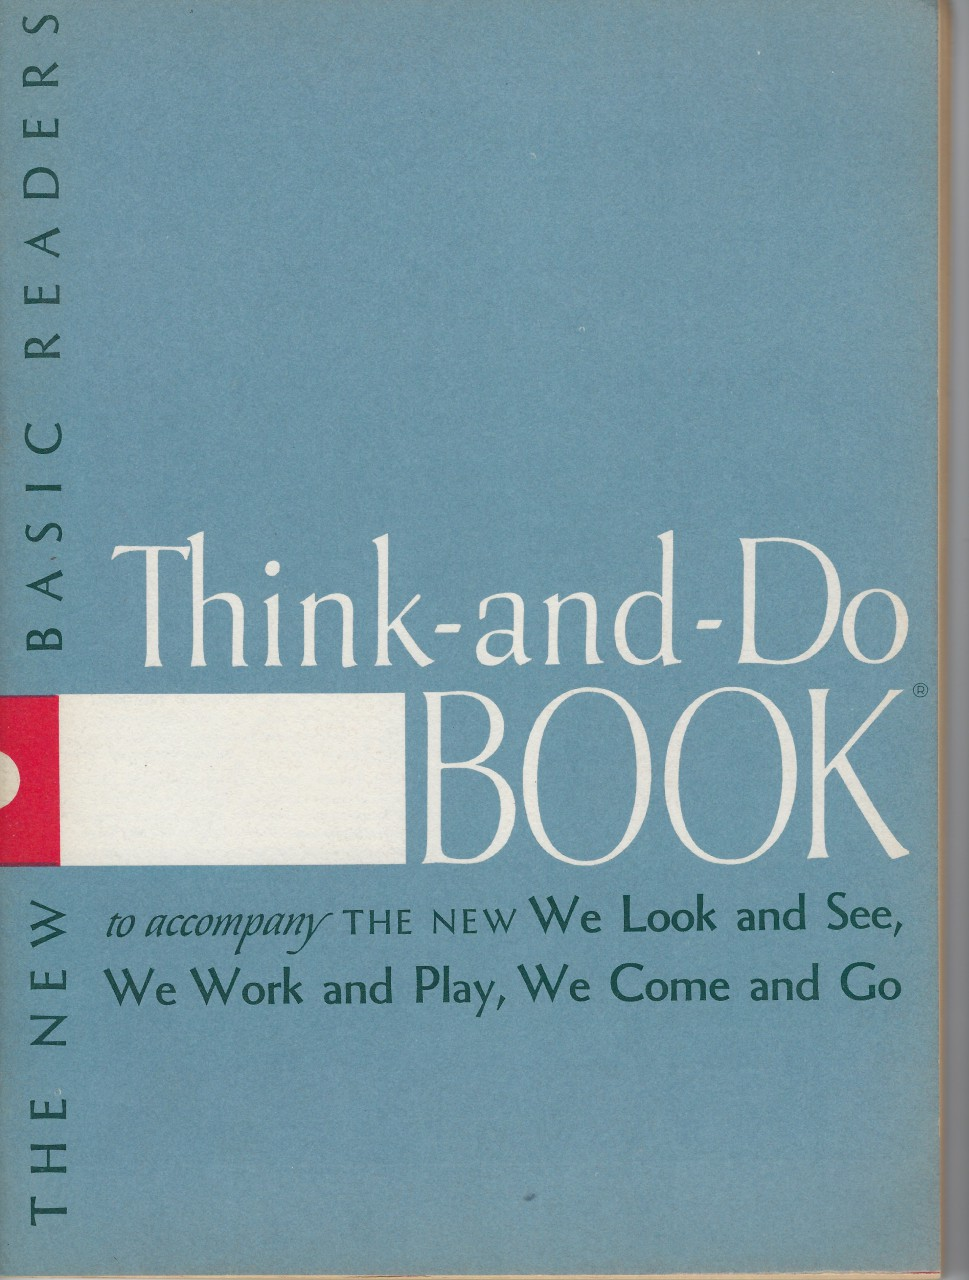 Image for Think and Do Book to accompany The New We Look and See, We Work and Play, We Come and Go 1956 Dick & Jane